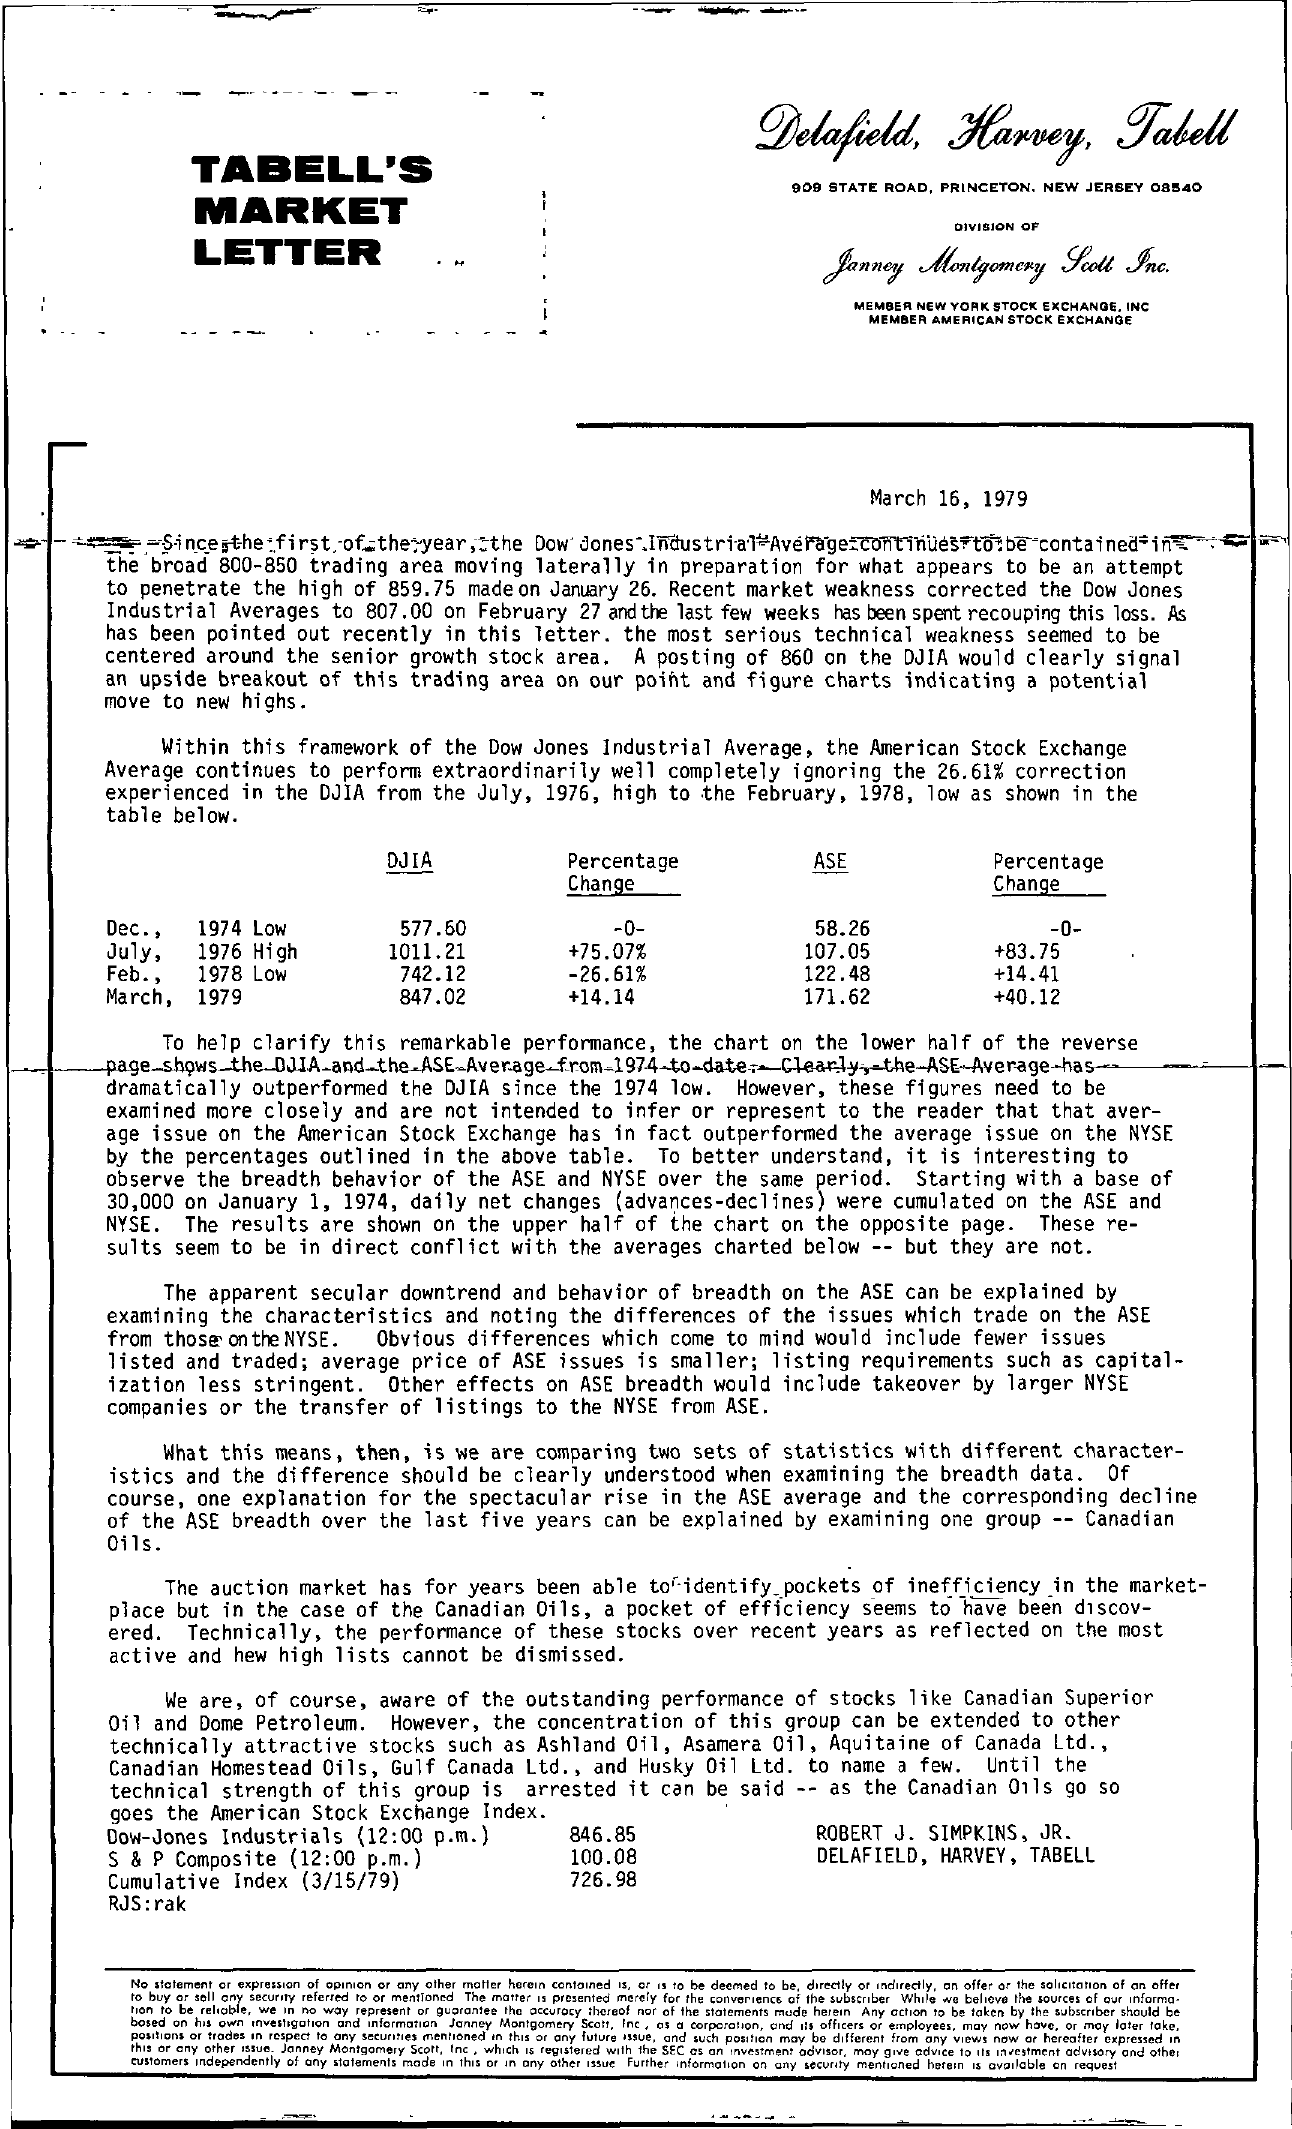 Tabell's Market Letter - March 16, 1979 page 1